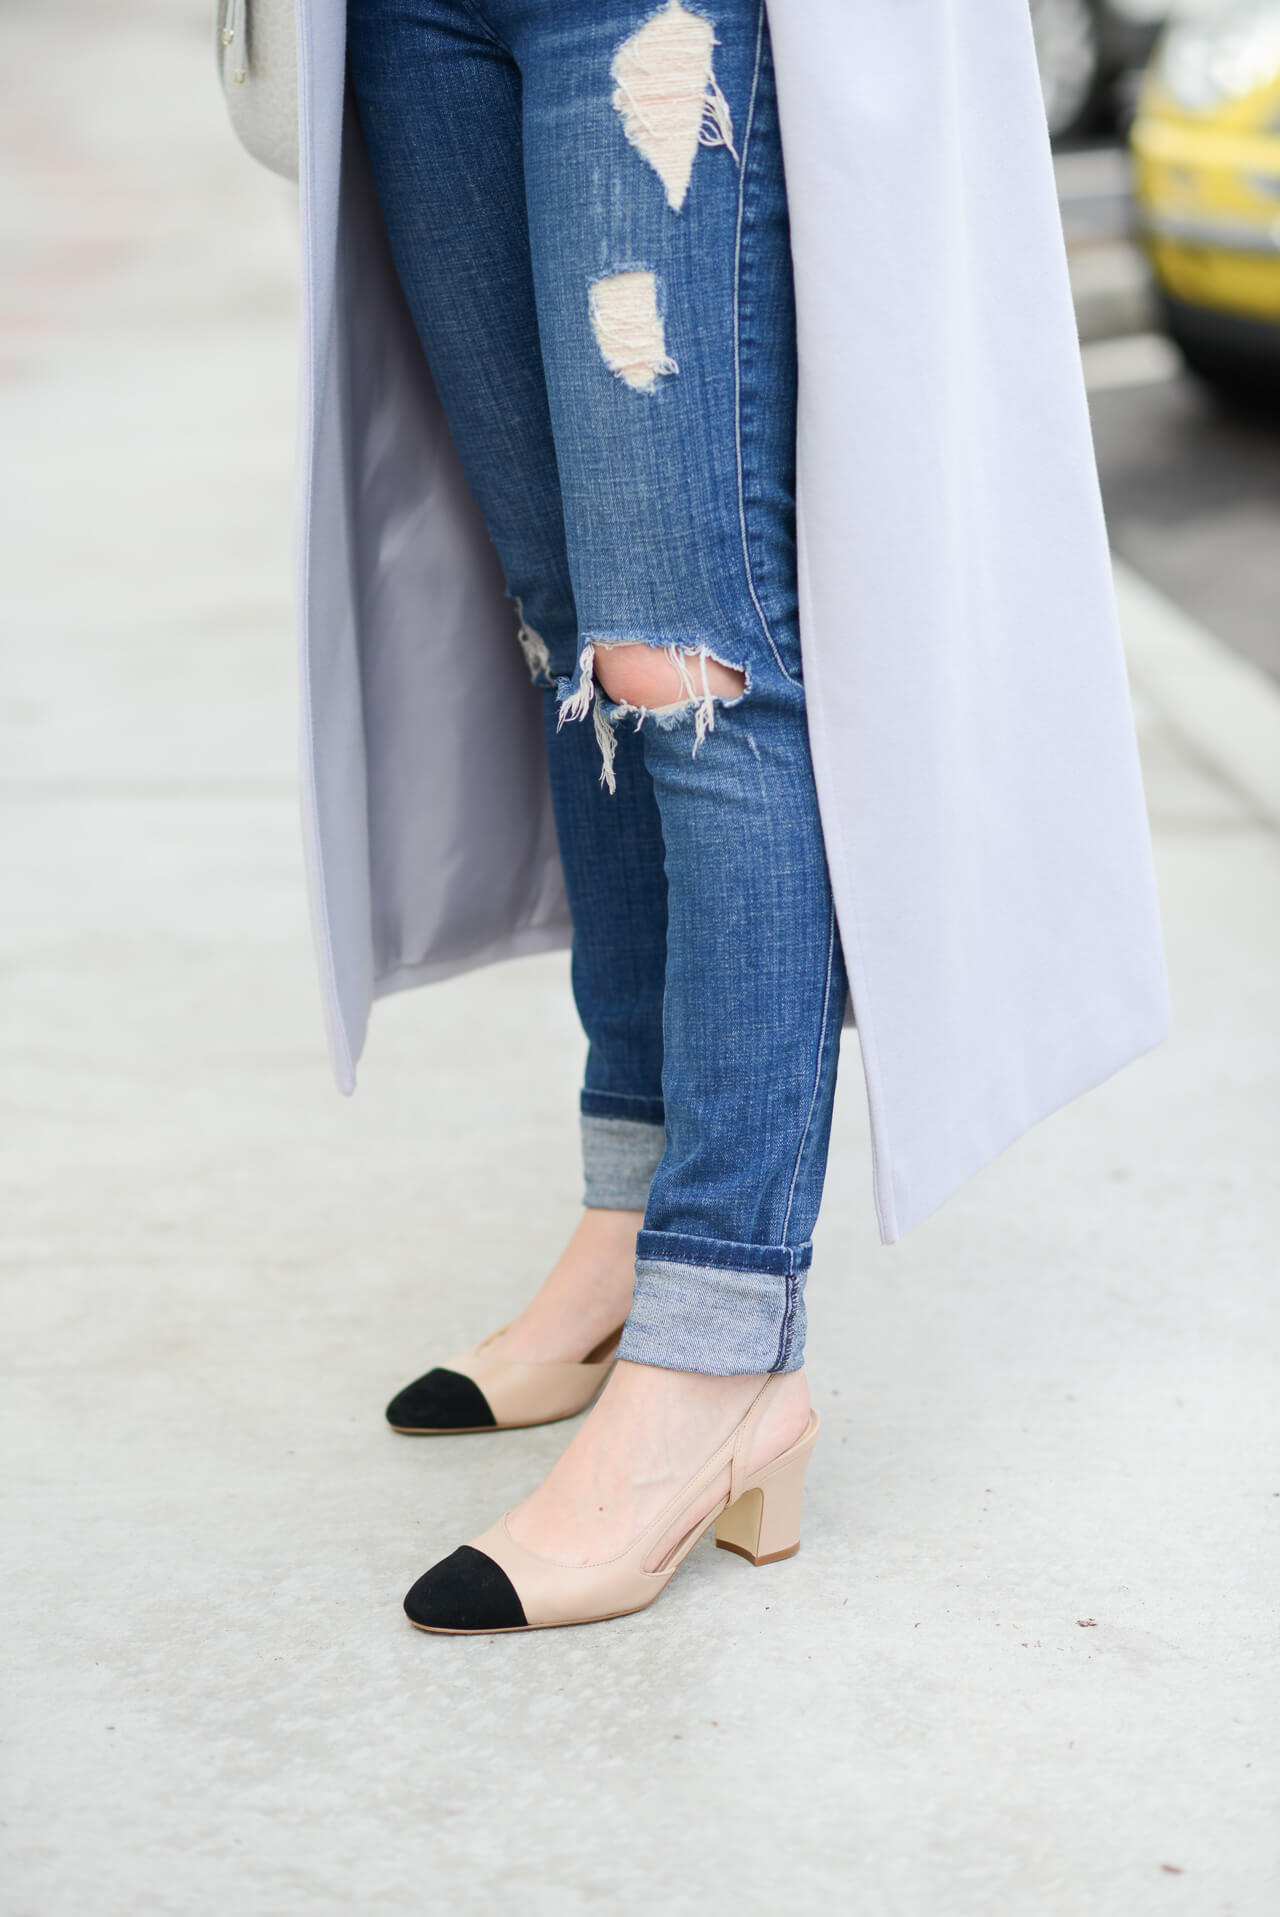 distressed jeans and affordable cap-toe slingback heels